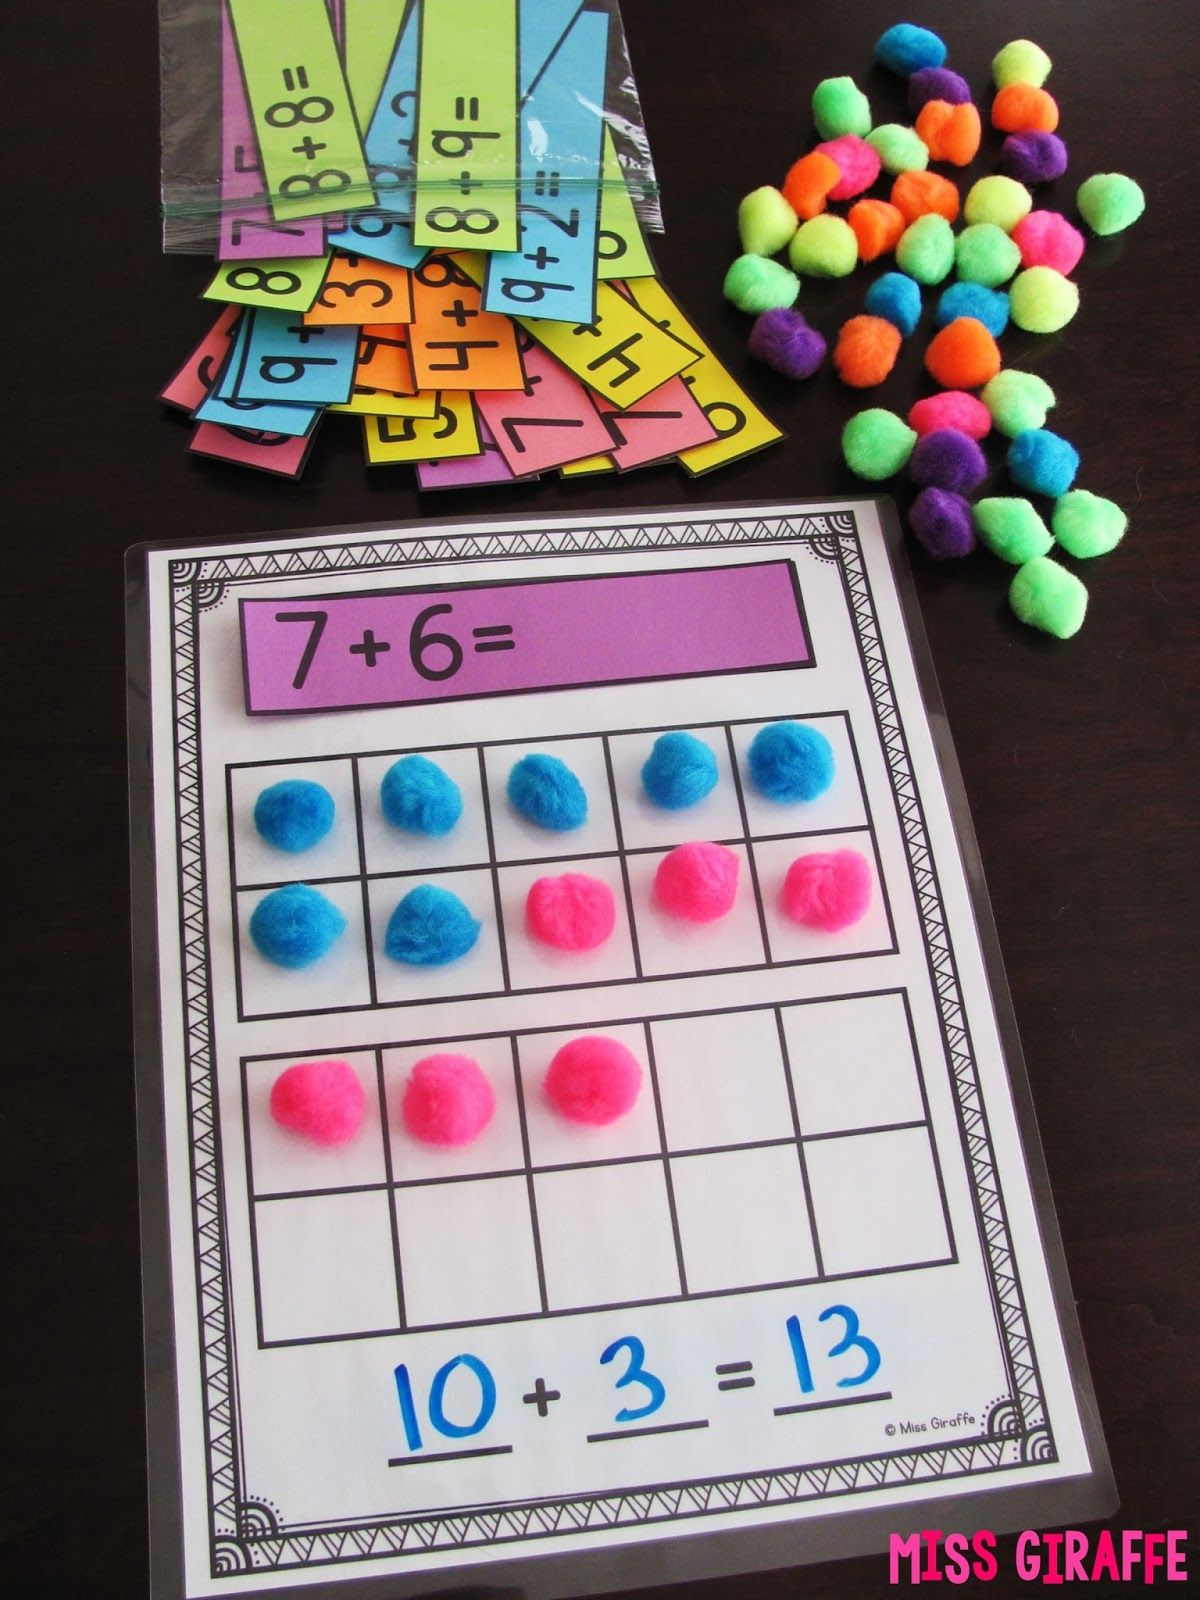 Making A 10 To Add Is A Great Math Strategy To Help